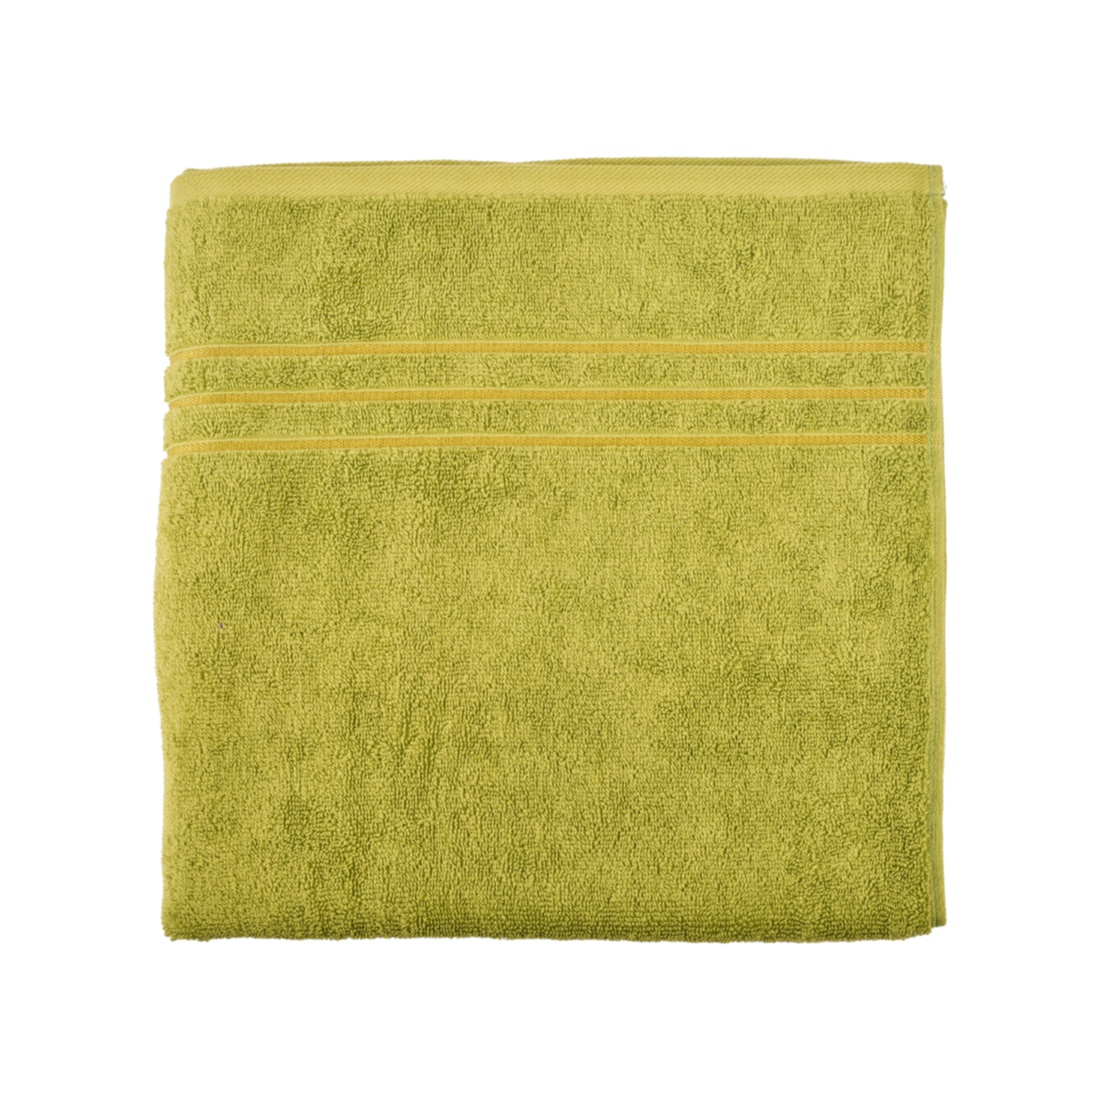 Nora Combed Cotton Bath Towels in Zest Colour by Living Essence